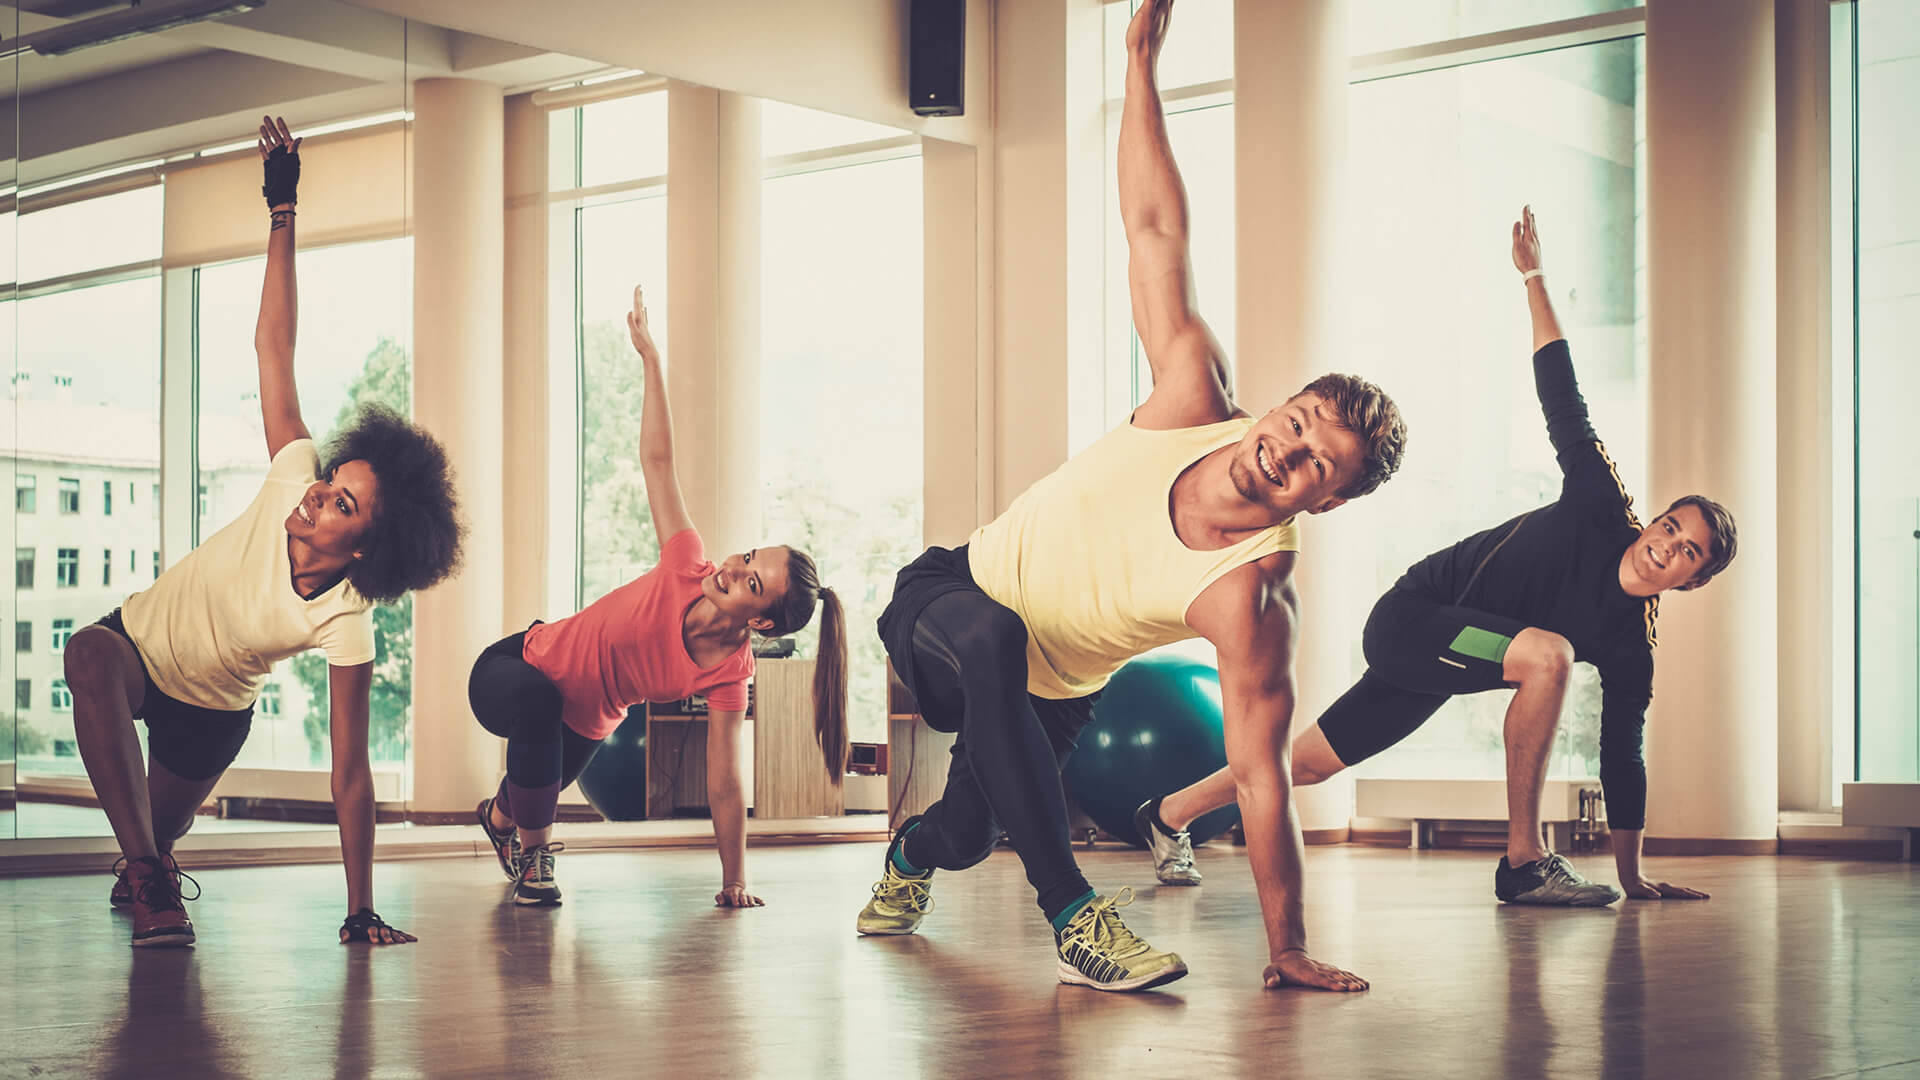 exercise-fitness-workout-aerobics-ss-1920.jpg